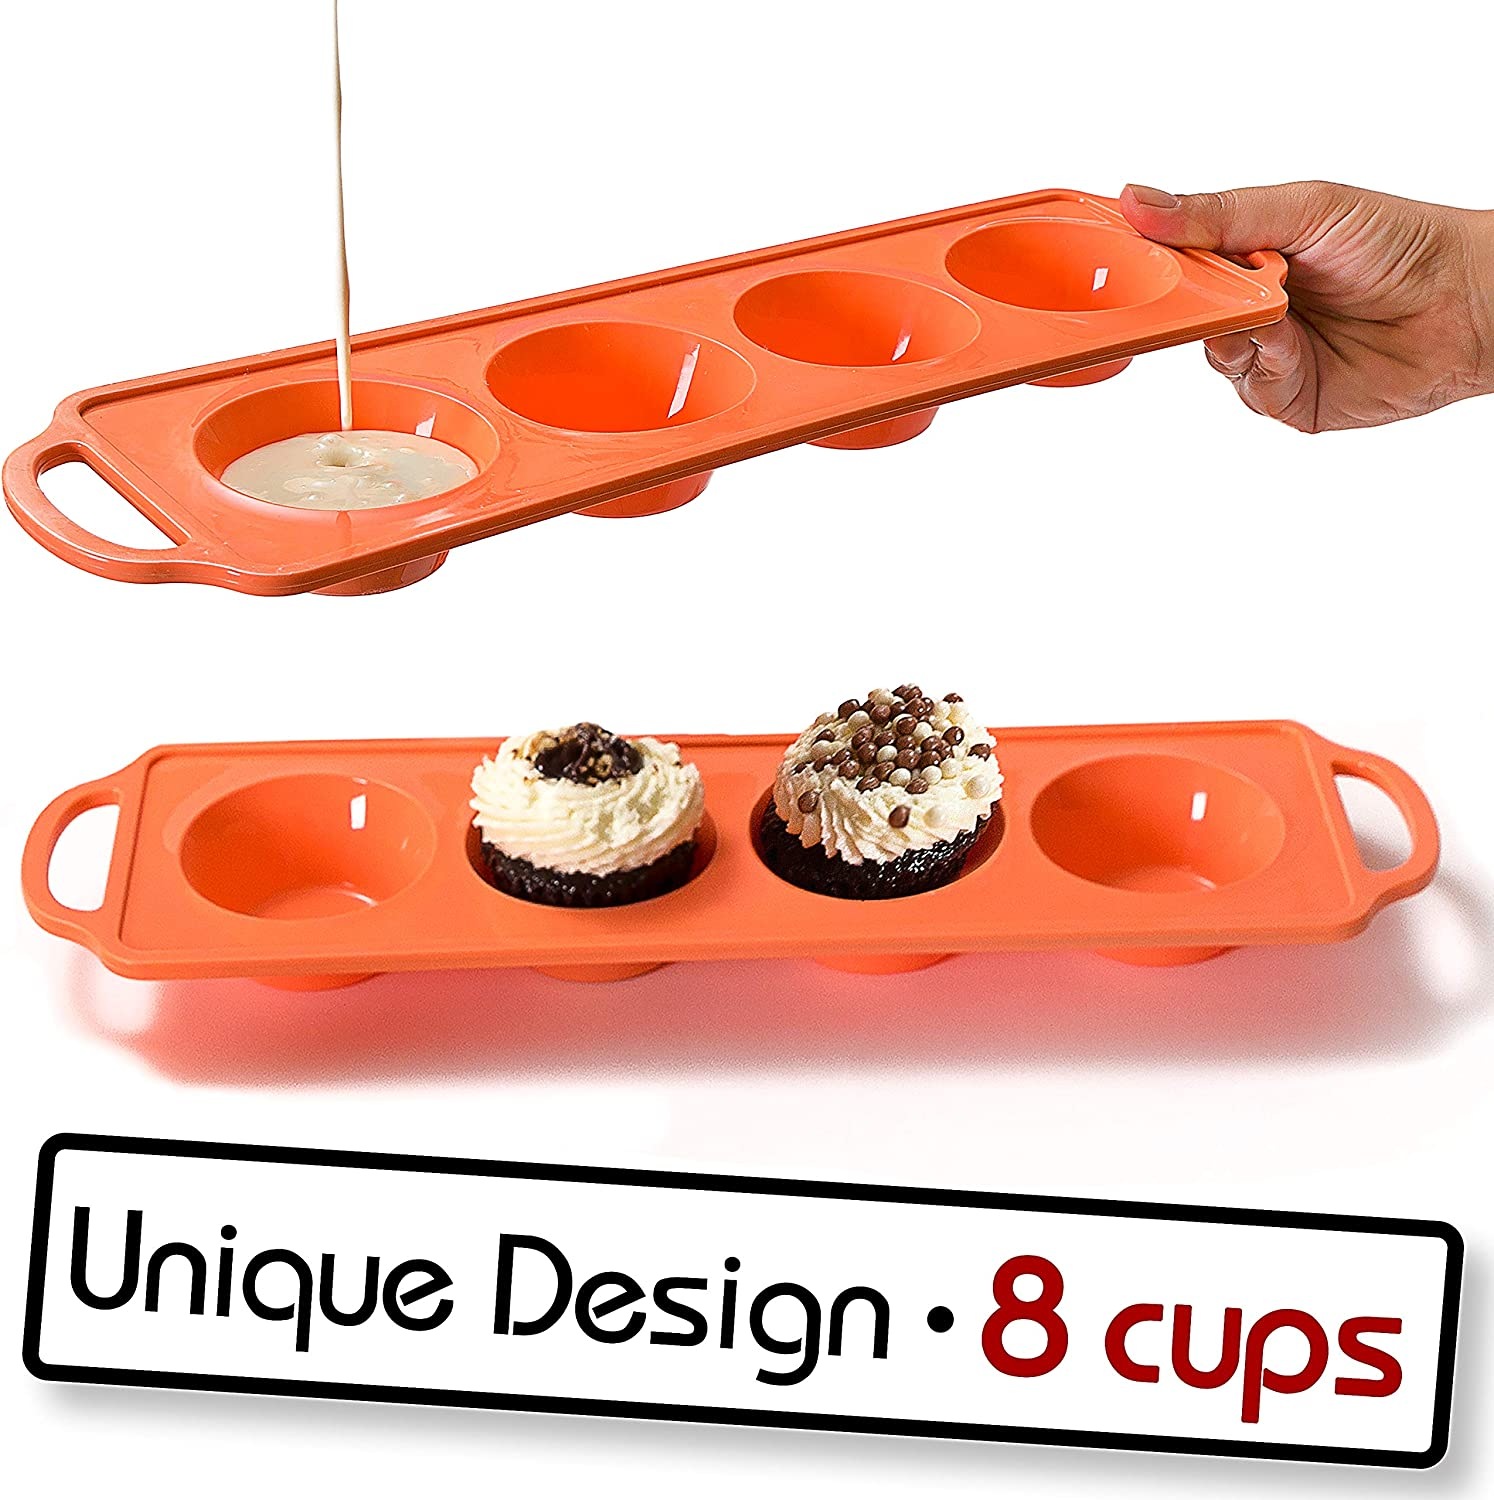 Moty, 8 Cup - Silicone Muffin Pan, Sturdy Handle, Cupcake Baking/Non - Stick Silicone Mold/Dishwasher - Microwave Safe